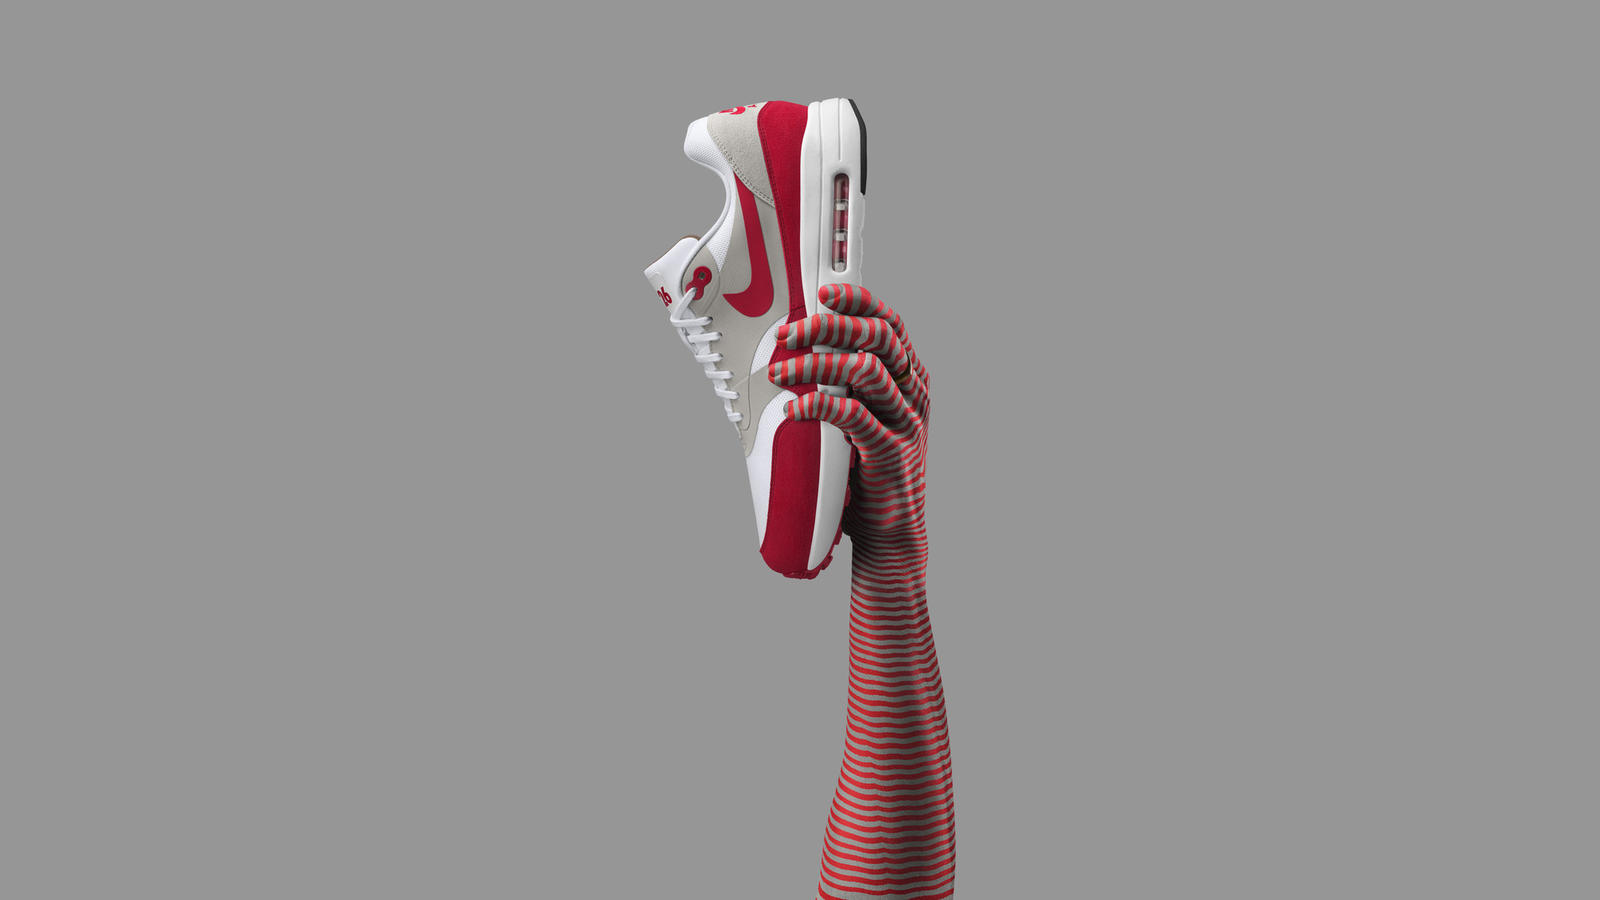 """To celebrate 30 years of Air Max 1, the Air Max 1 Ultra 2.0 arrives. Recognized as the most innovative Air Max 1 to date, cored-out ultra-tooling helps make it one of the lightest Air Max models ever. The """"3.26"""" placed on the tongue marks the anniversary of the original."""